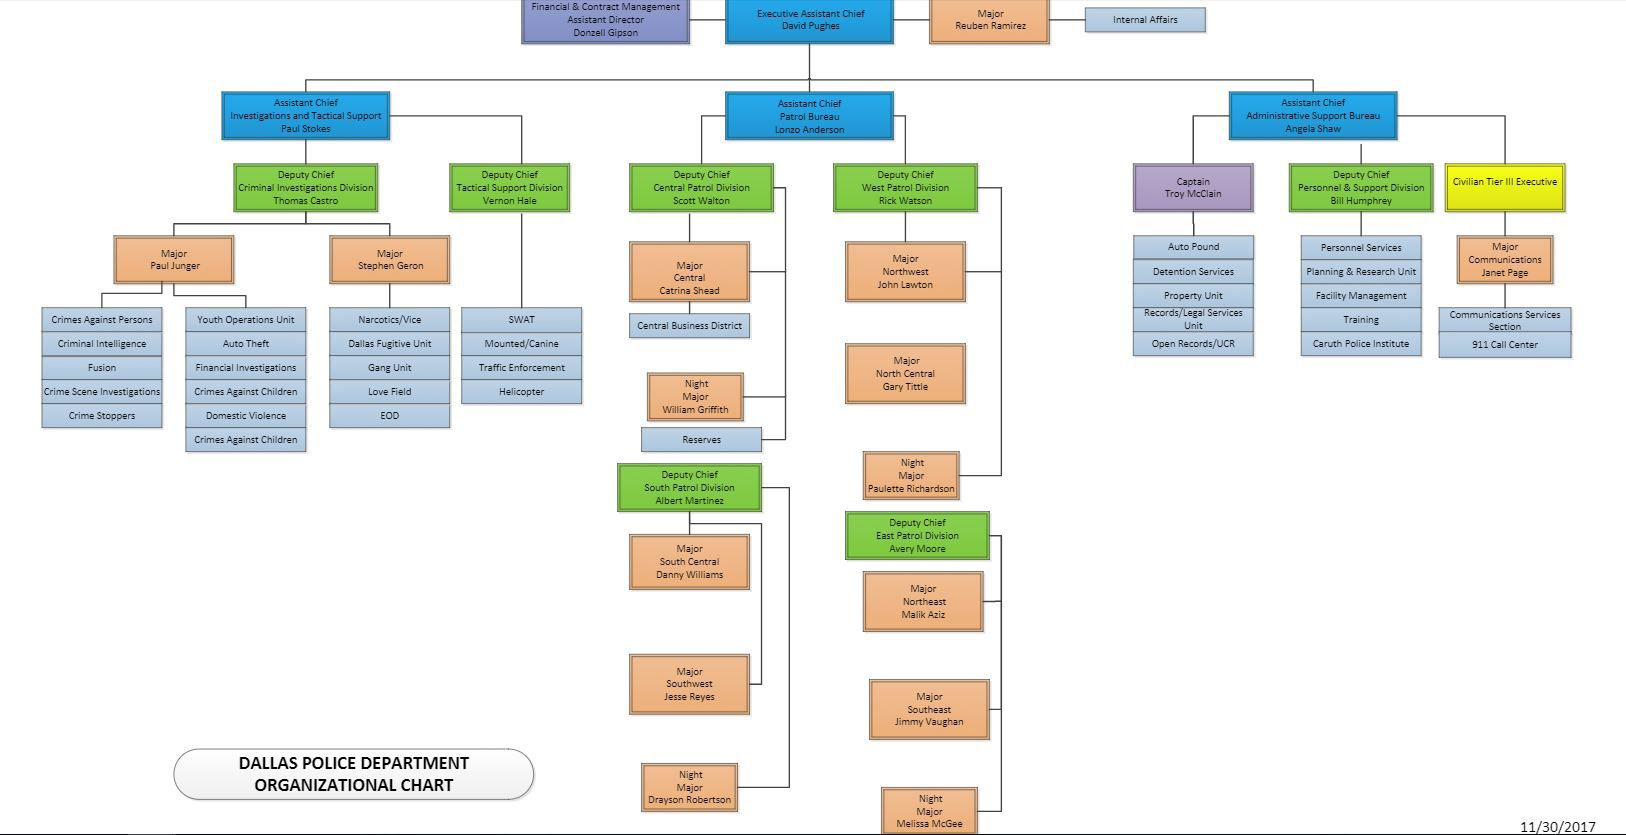 The new organization chart that was released Thursday